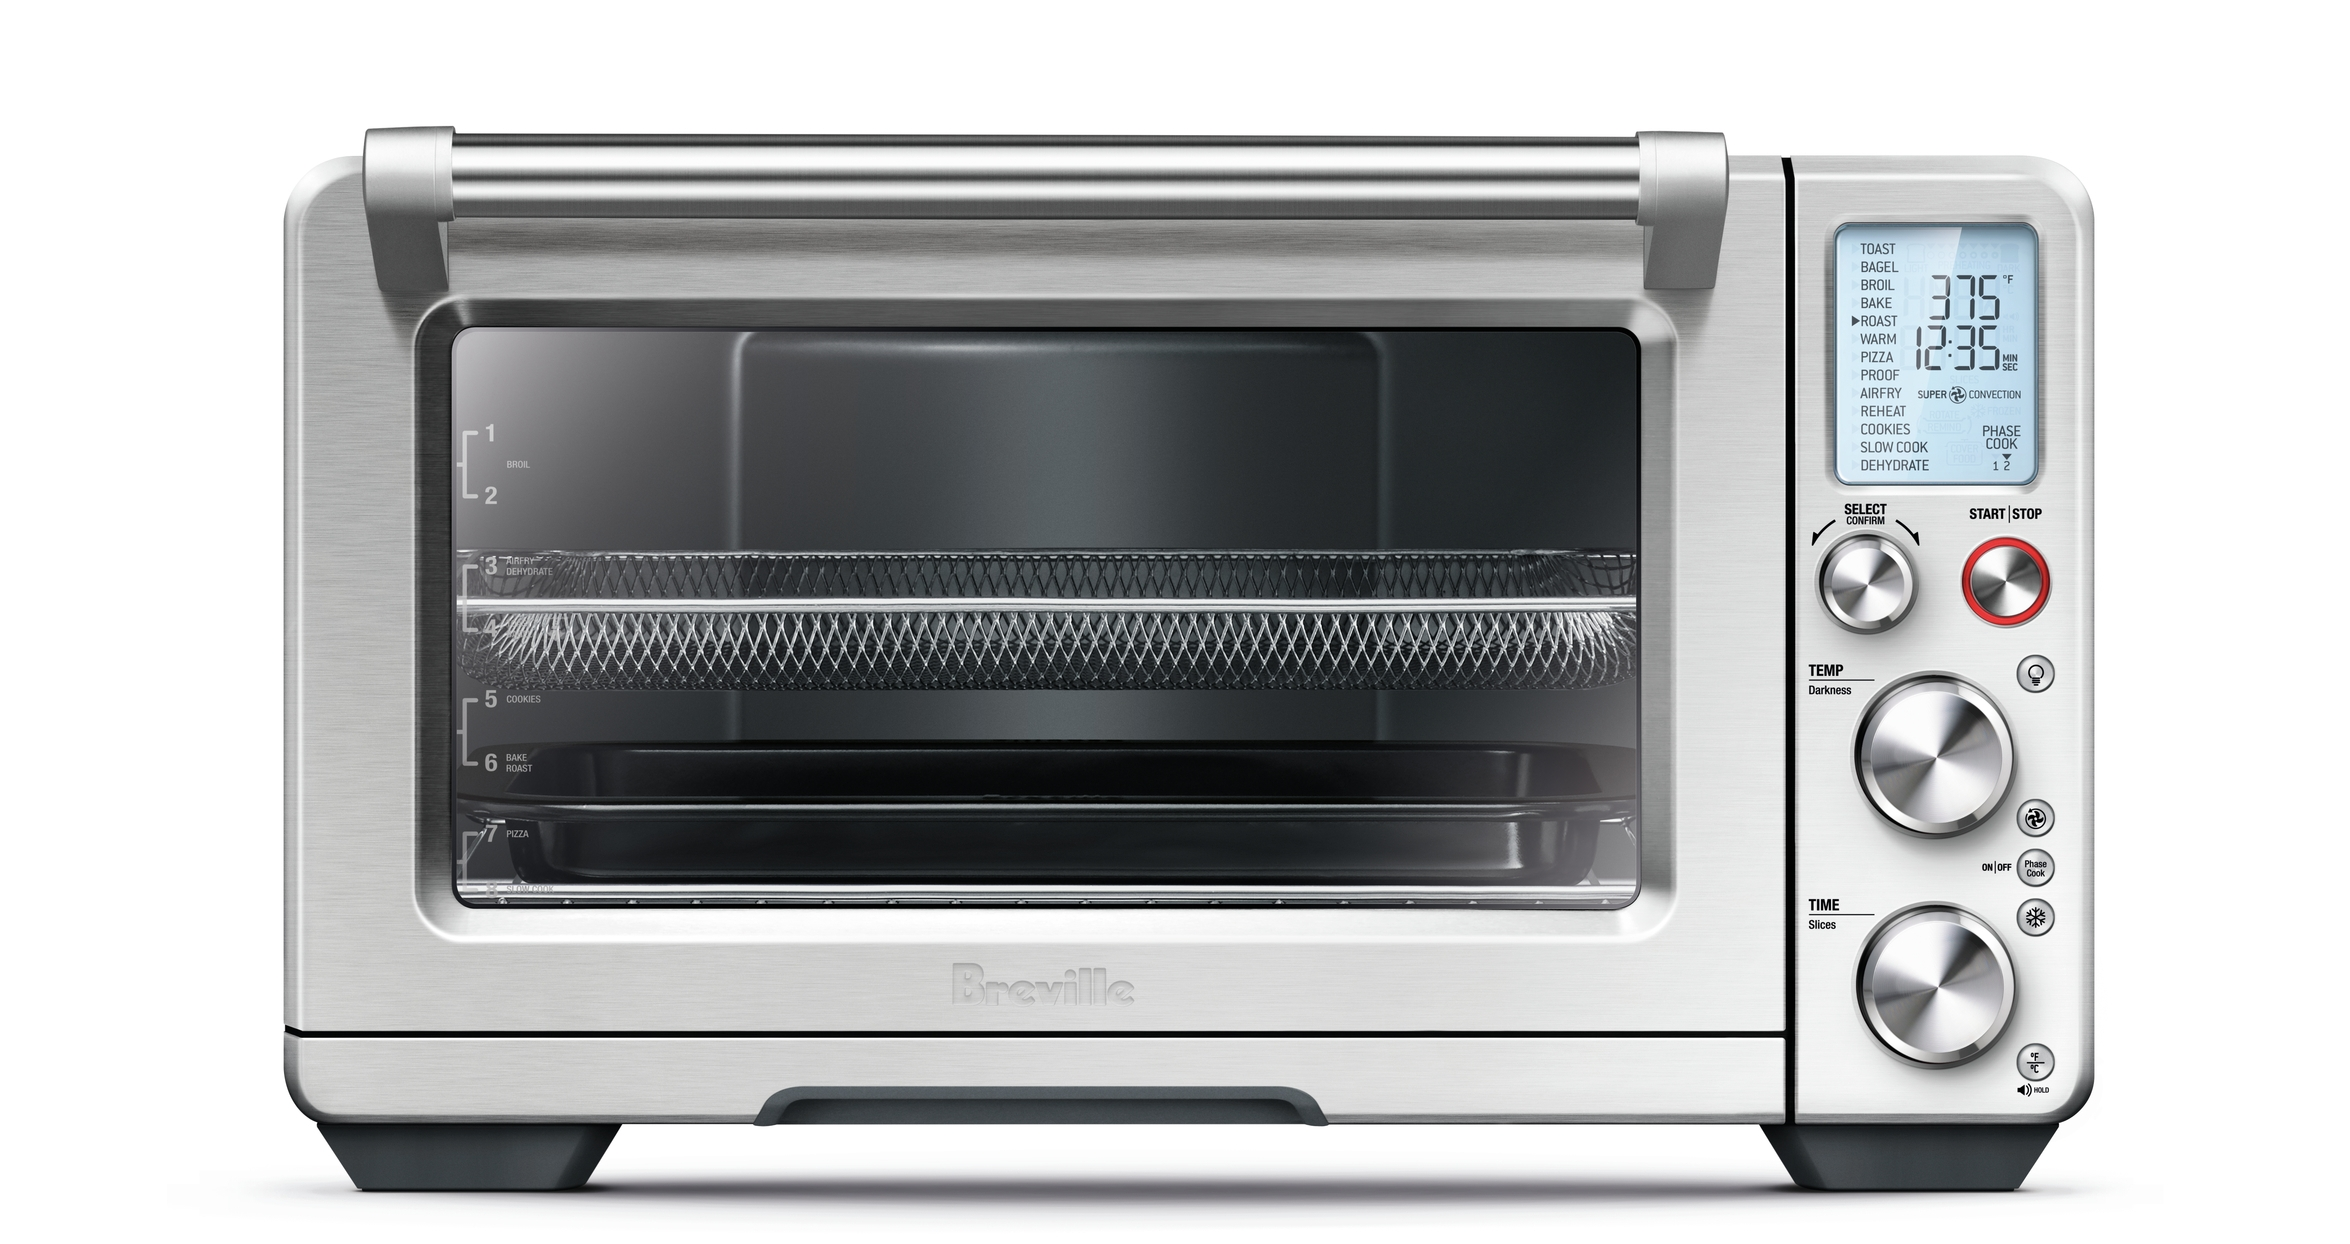 BOV900BSS - Exterior Image - The Smart Oven Air.jpeg